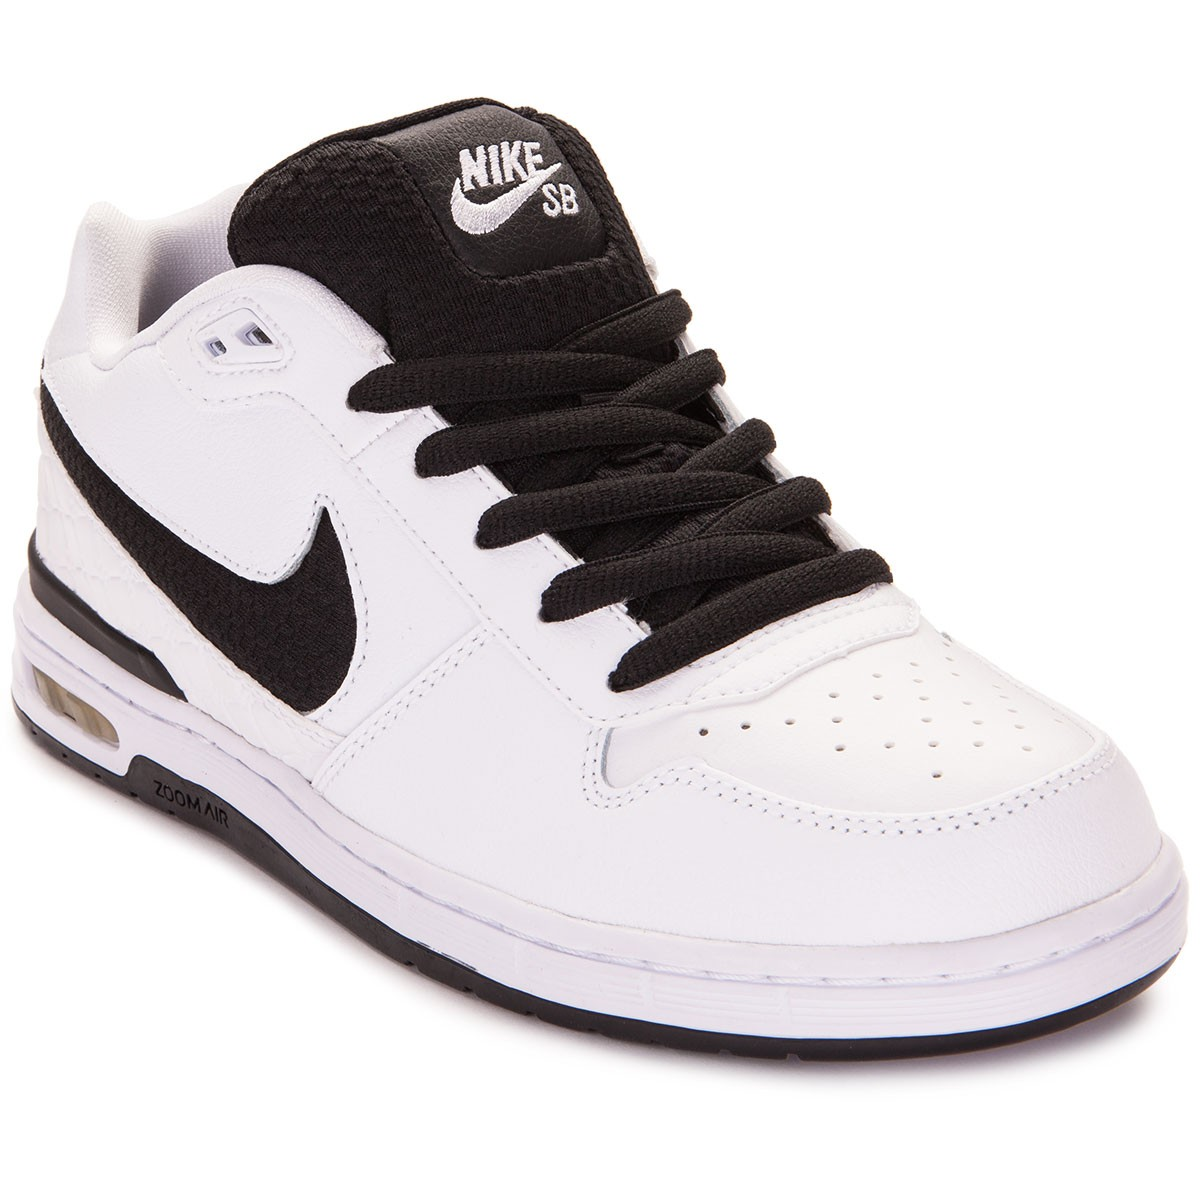 3c4cea41925114 Nike Paul Rodriguez Zoom Air Low Shoes - White Grey Black - 6.0